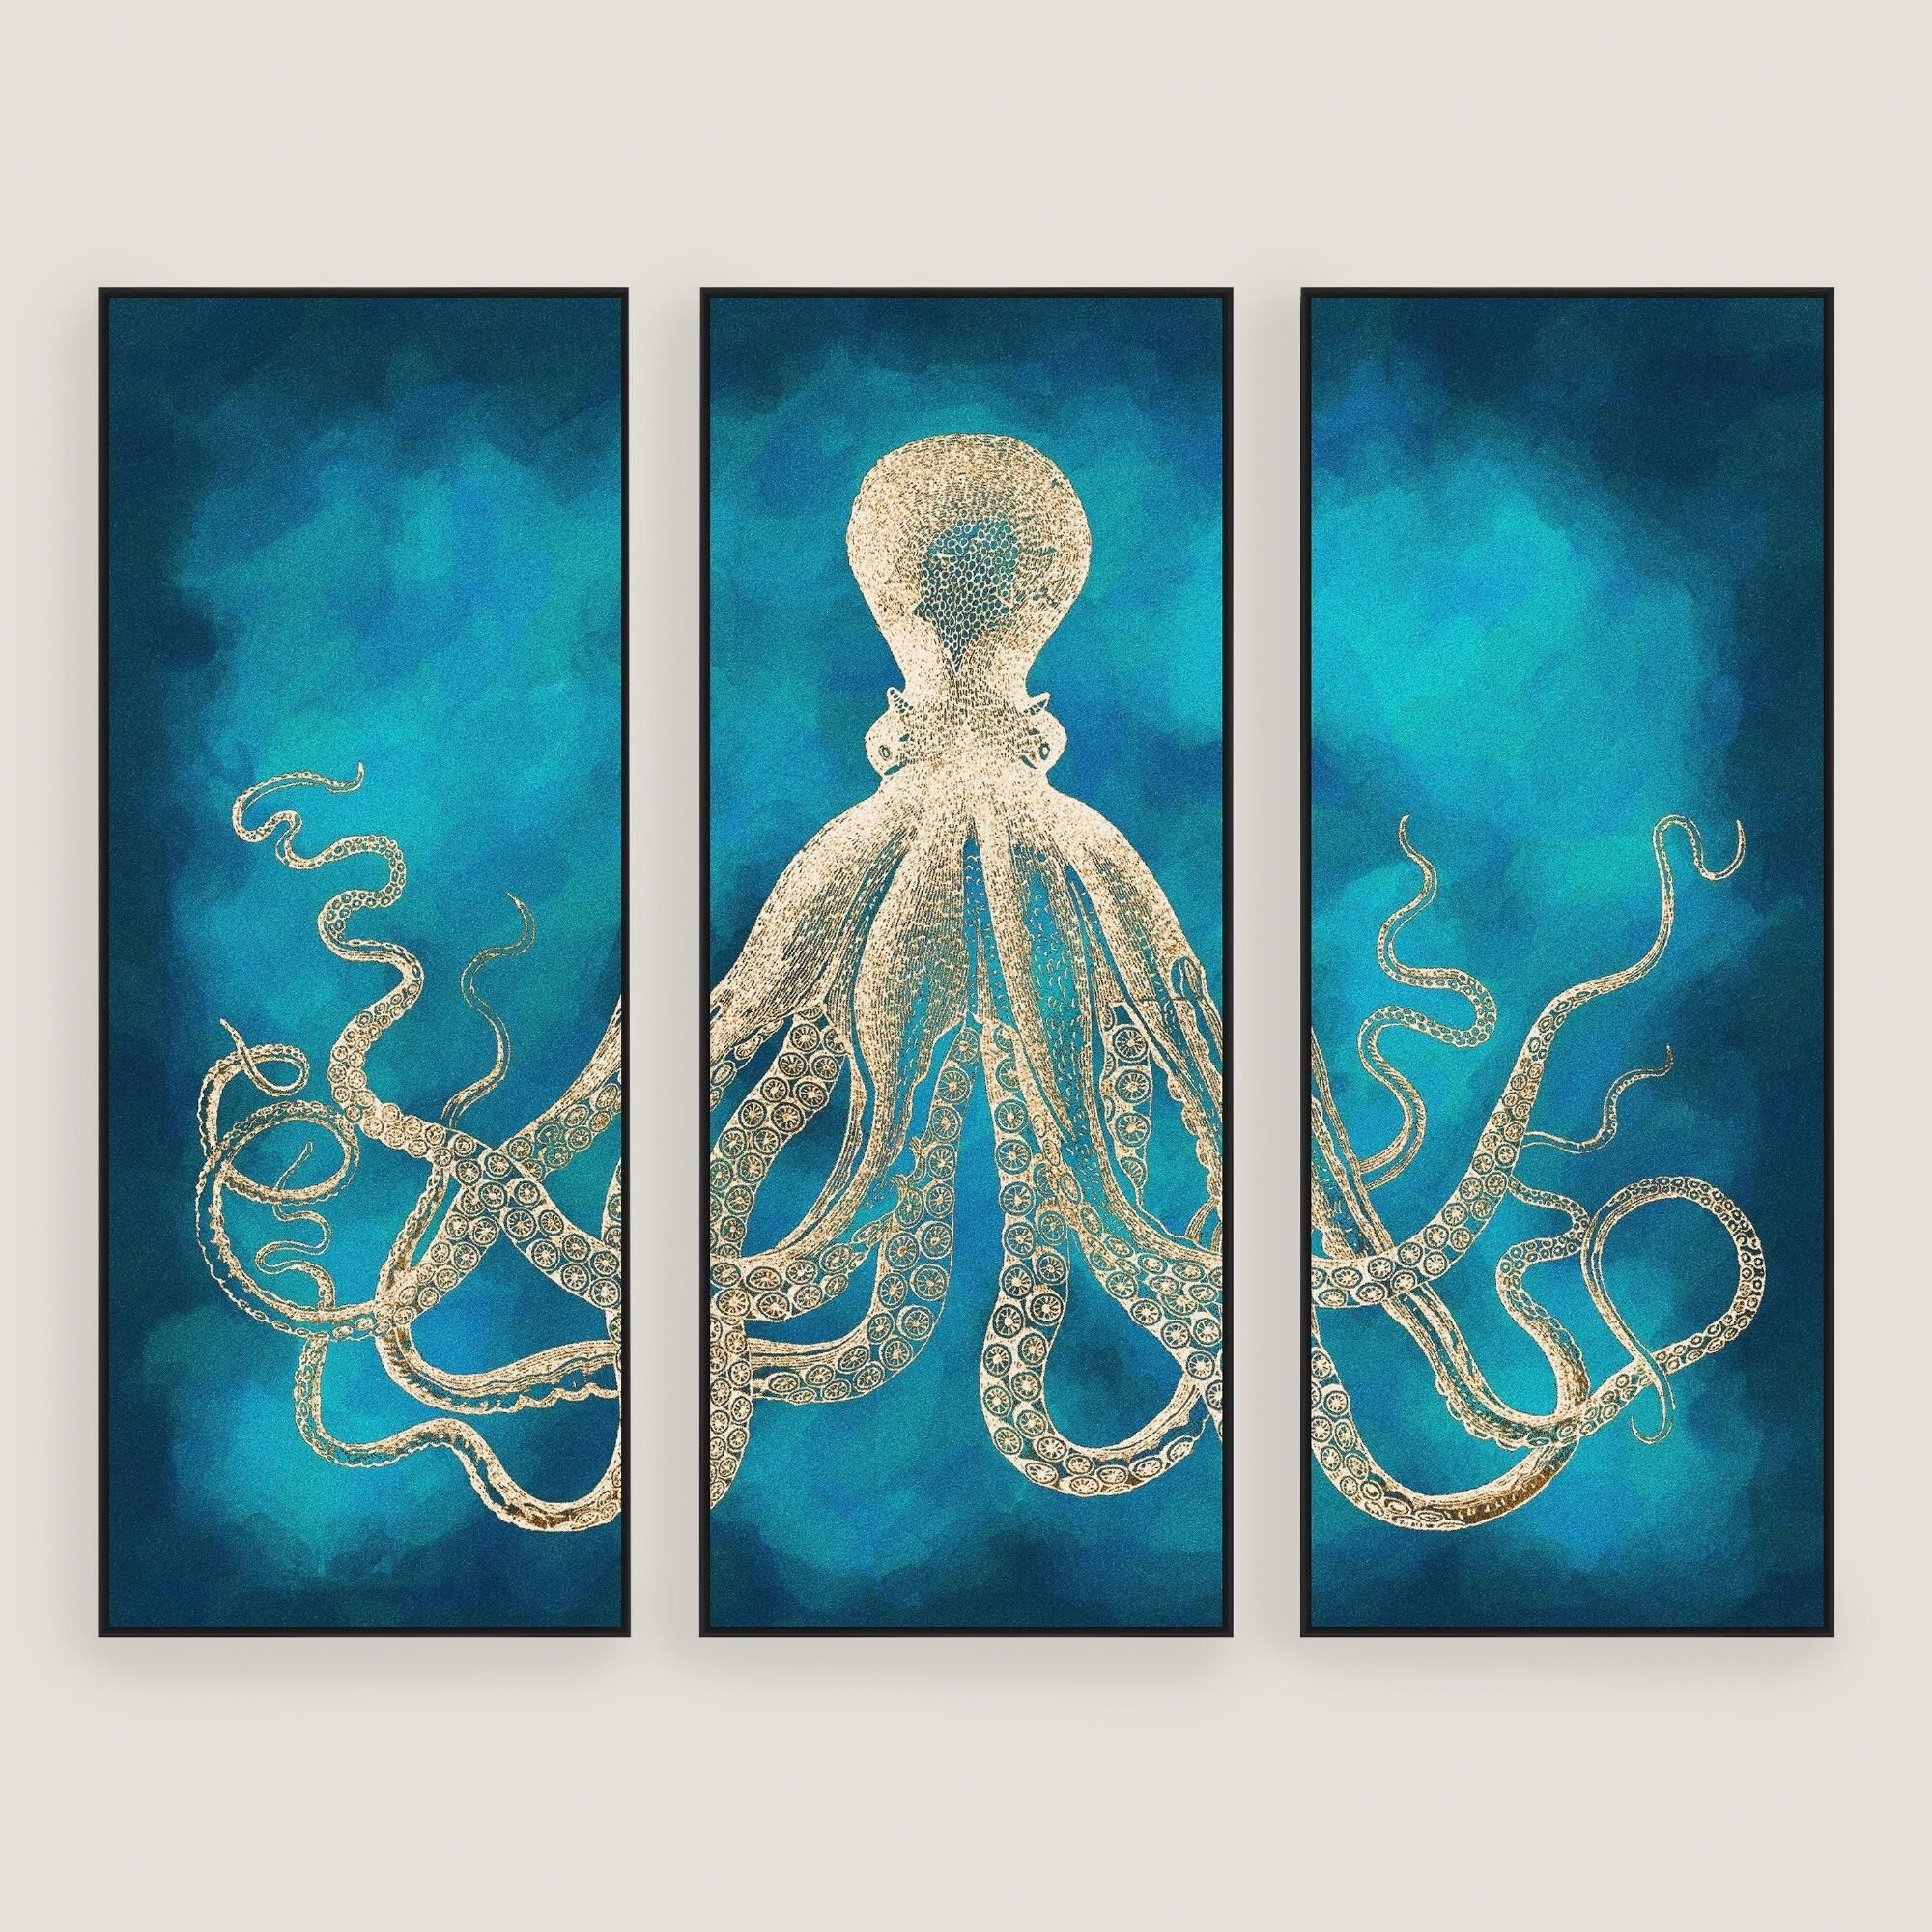 Octopus Sea Life Wall Art 3 Piece: Blueworld Market | Products Pertaining To 2017 Sea Life Wall Art (View 3 of 15)